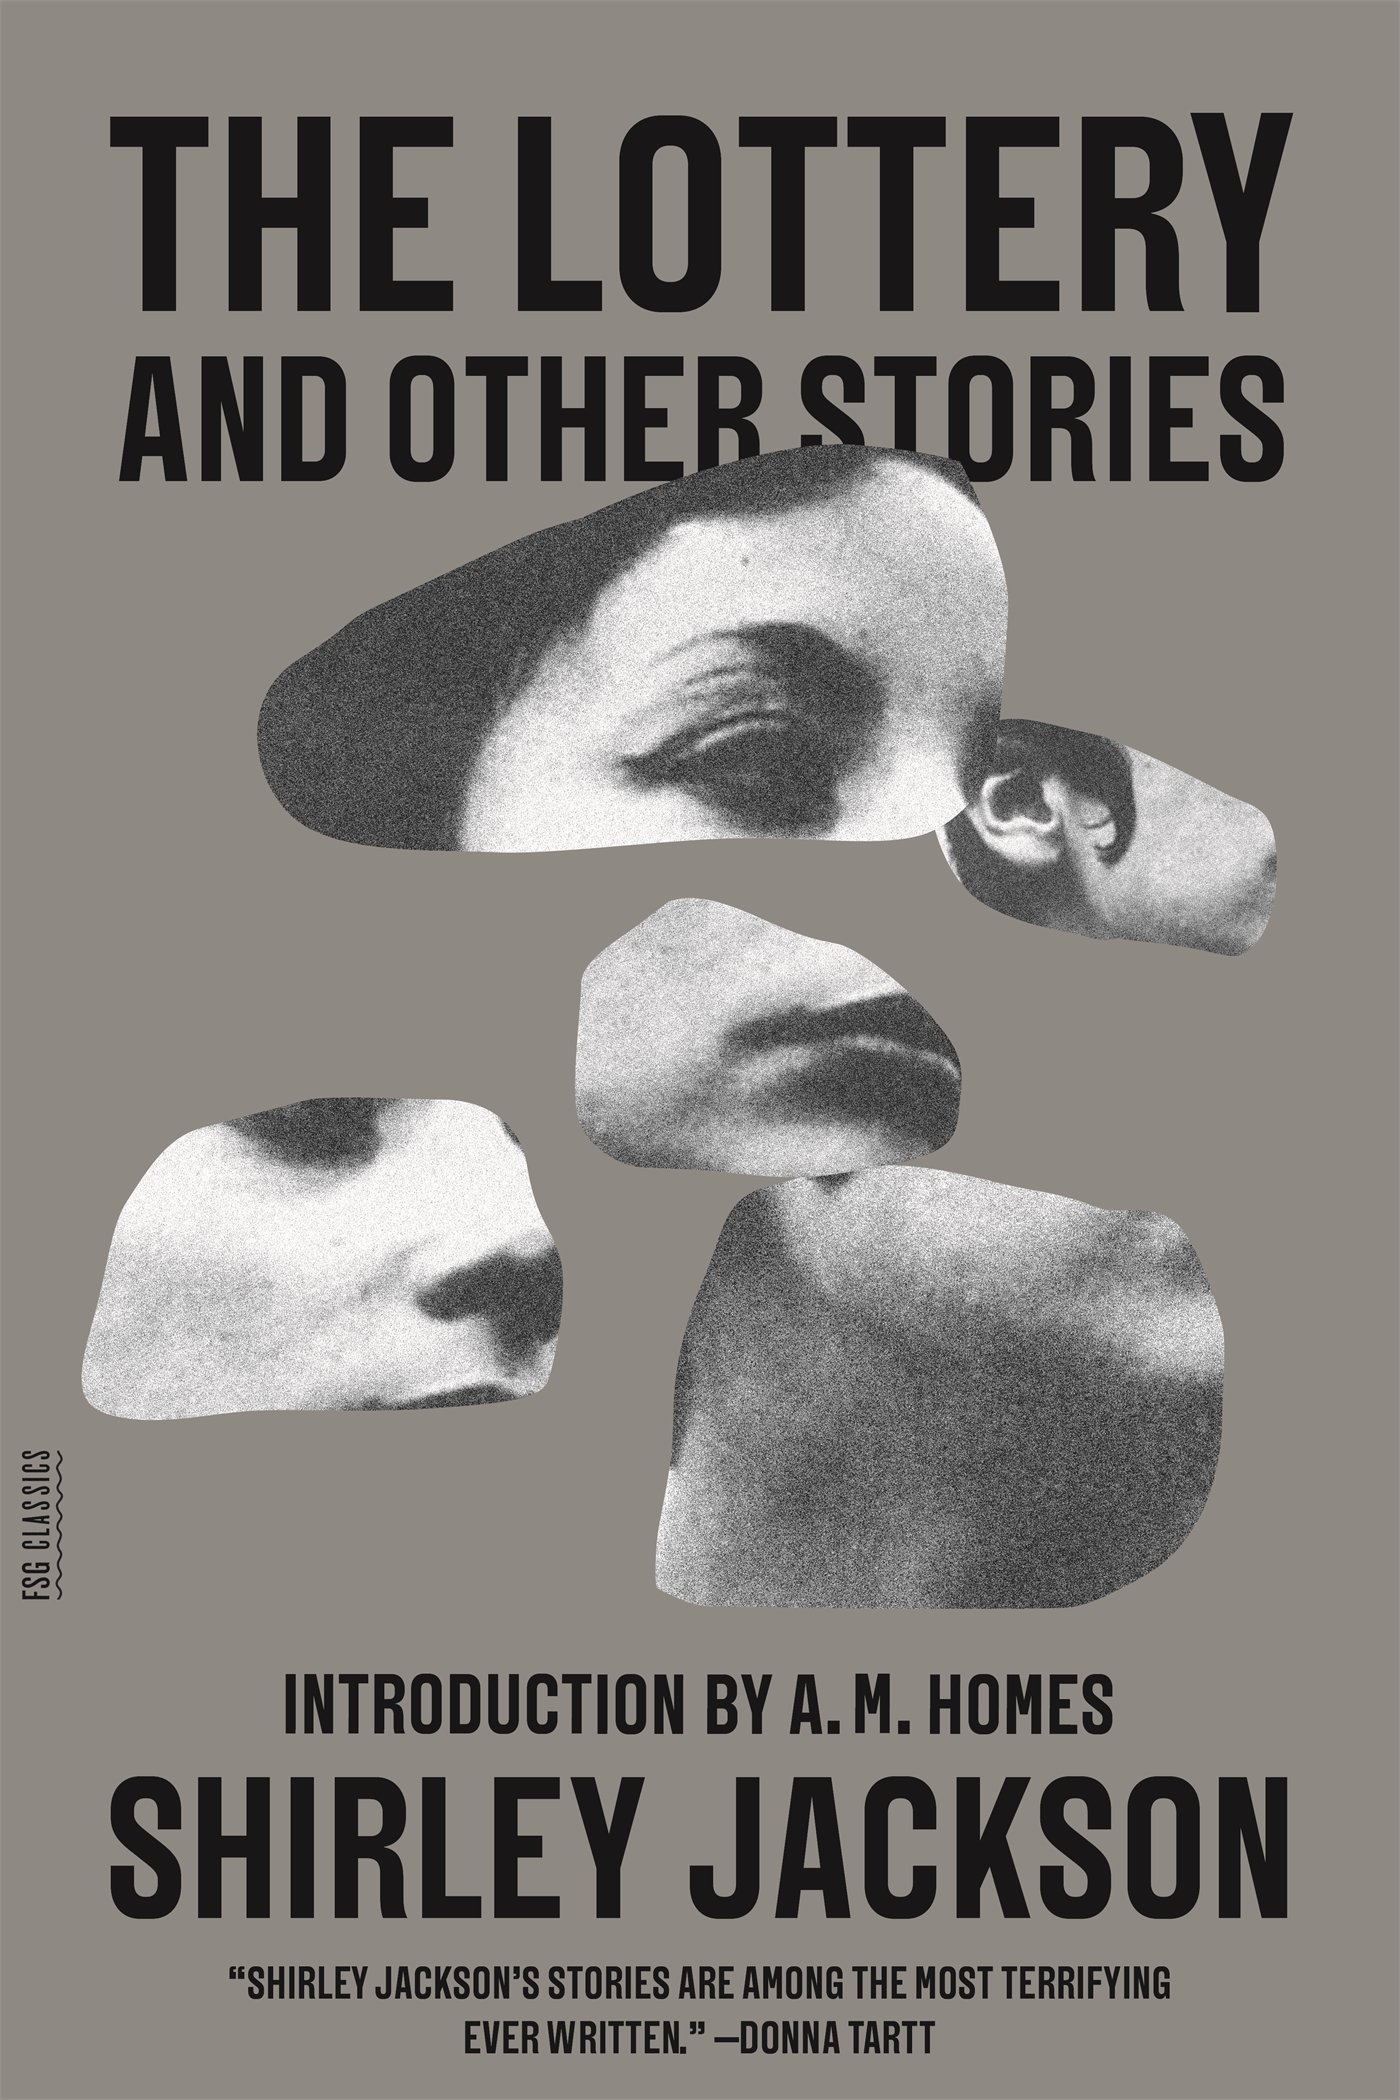 the lottery and other stories shirley jackson a m homes the lottery and other stories shirley jackson a m homes 9780374529536 literature amazon